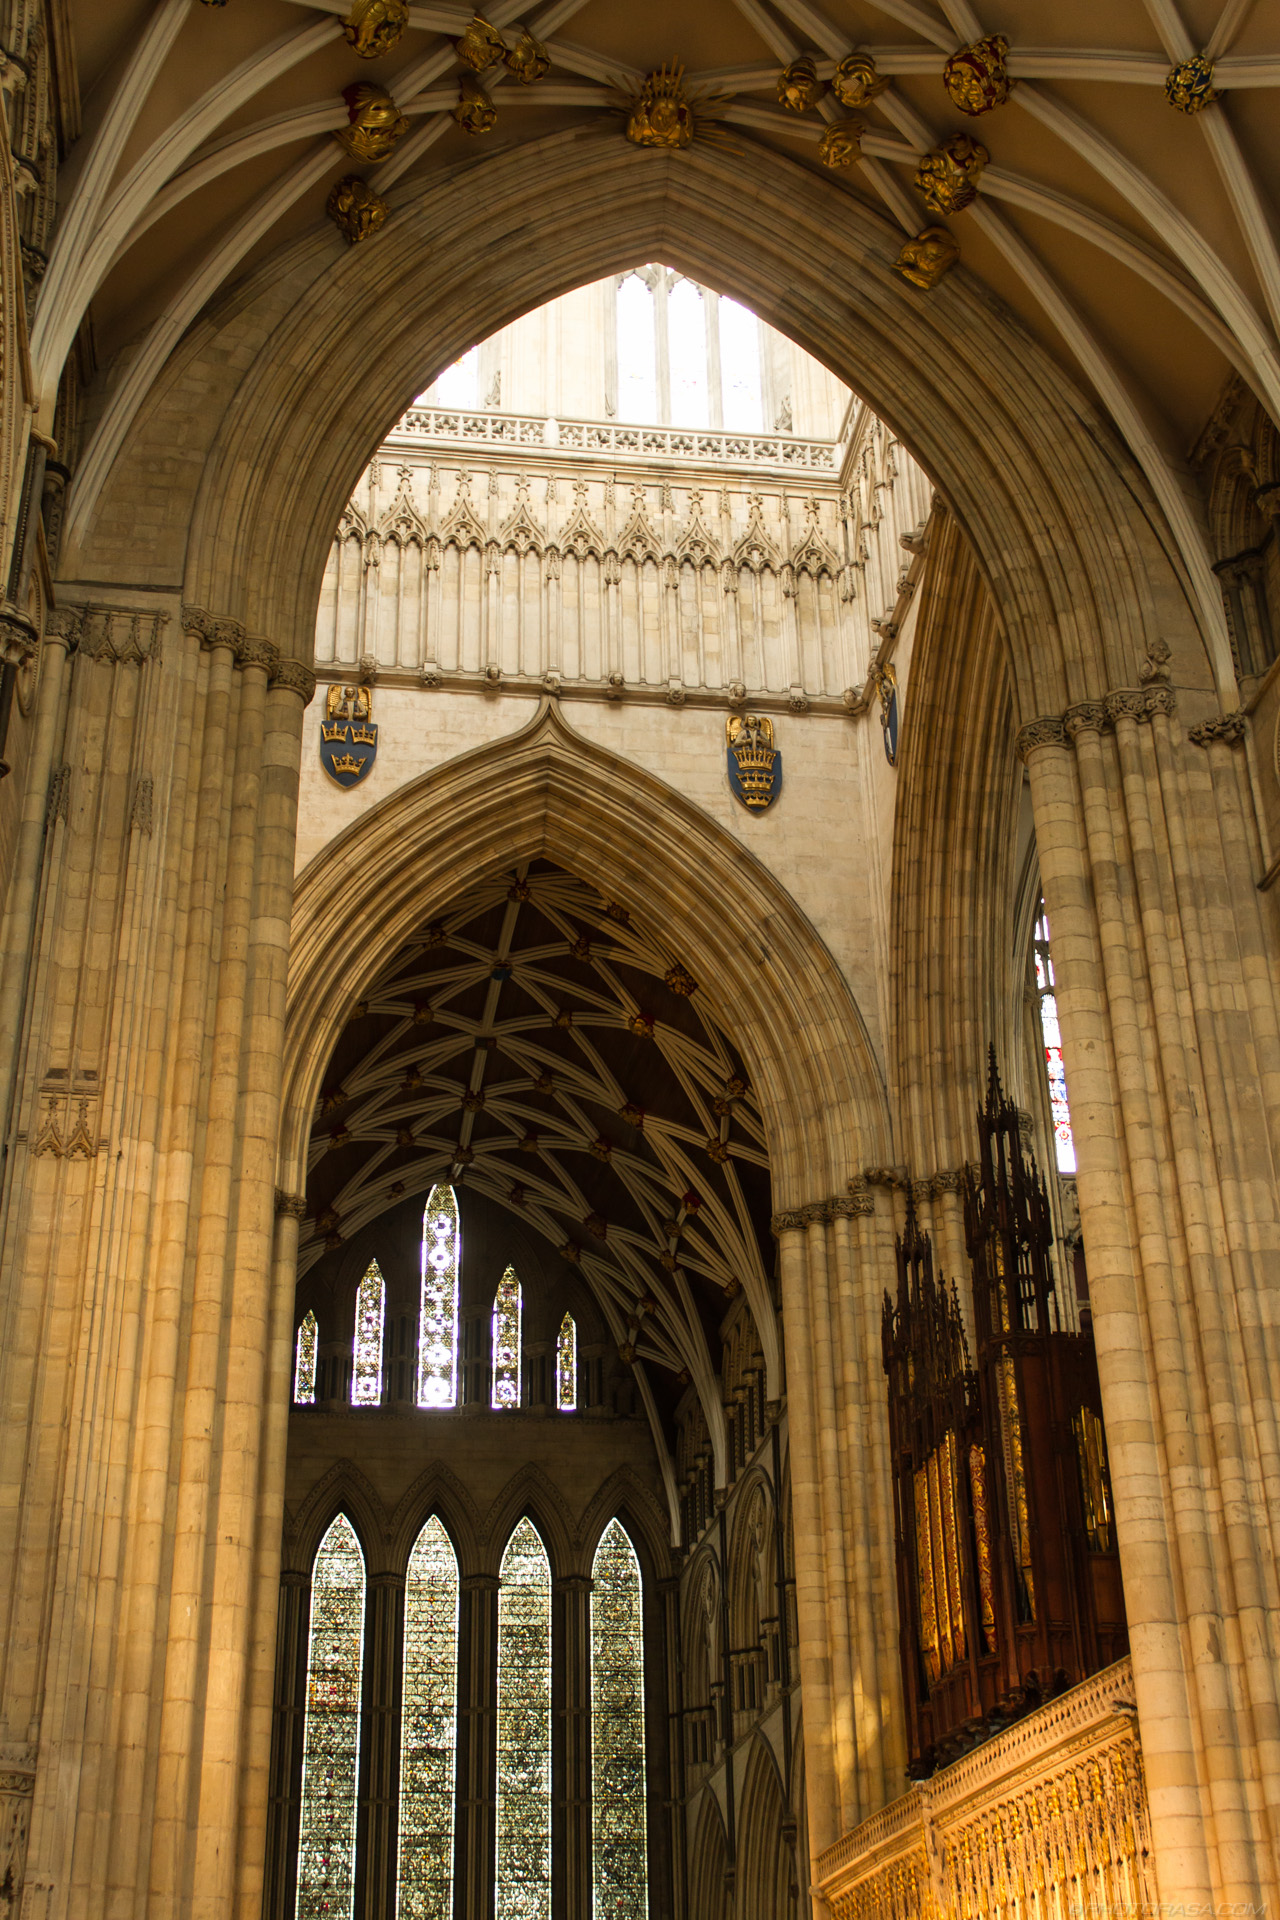 http://photorasa.com/yorkminster-cathedral/light-coming-down-from-central-tower/